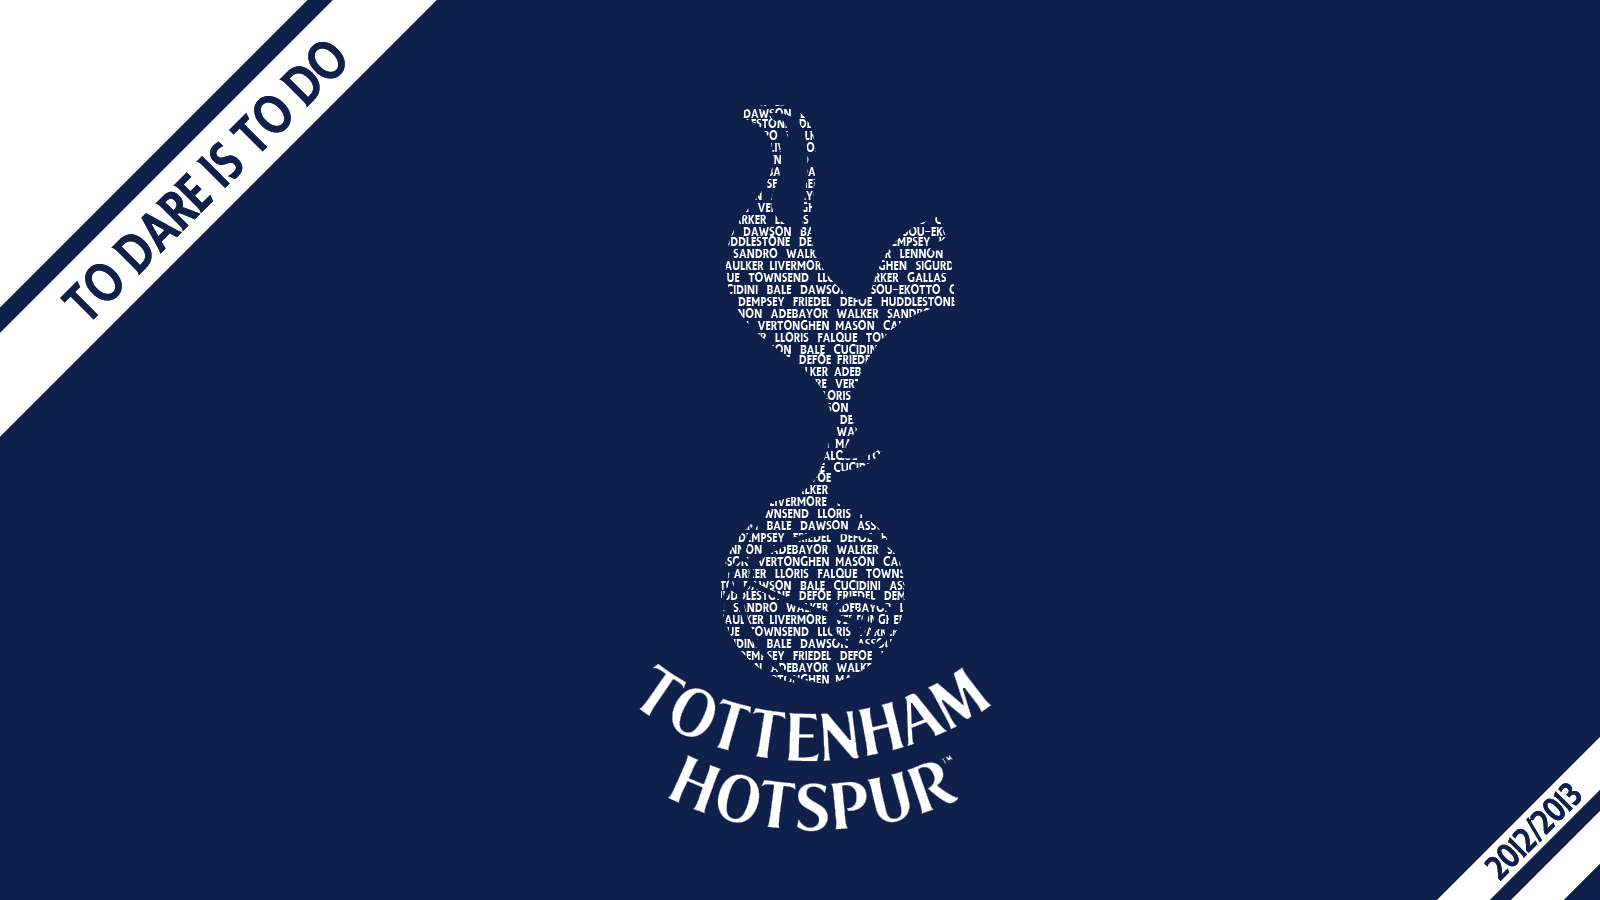 Tottenham wallpapers wallpaper cave spurs wallpapers the fighting cock tottenham hotspur spurs forum download voltagebd Choice Image